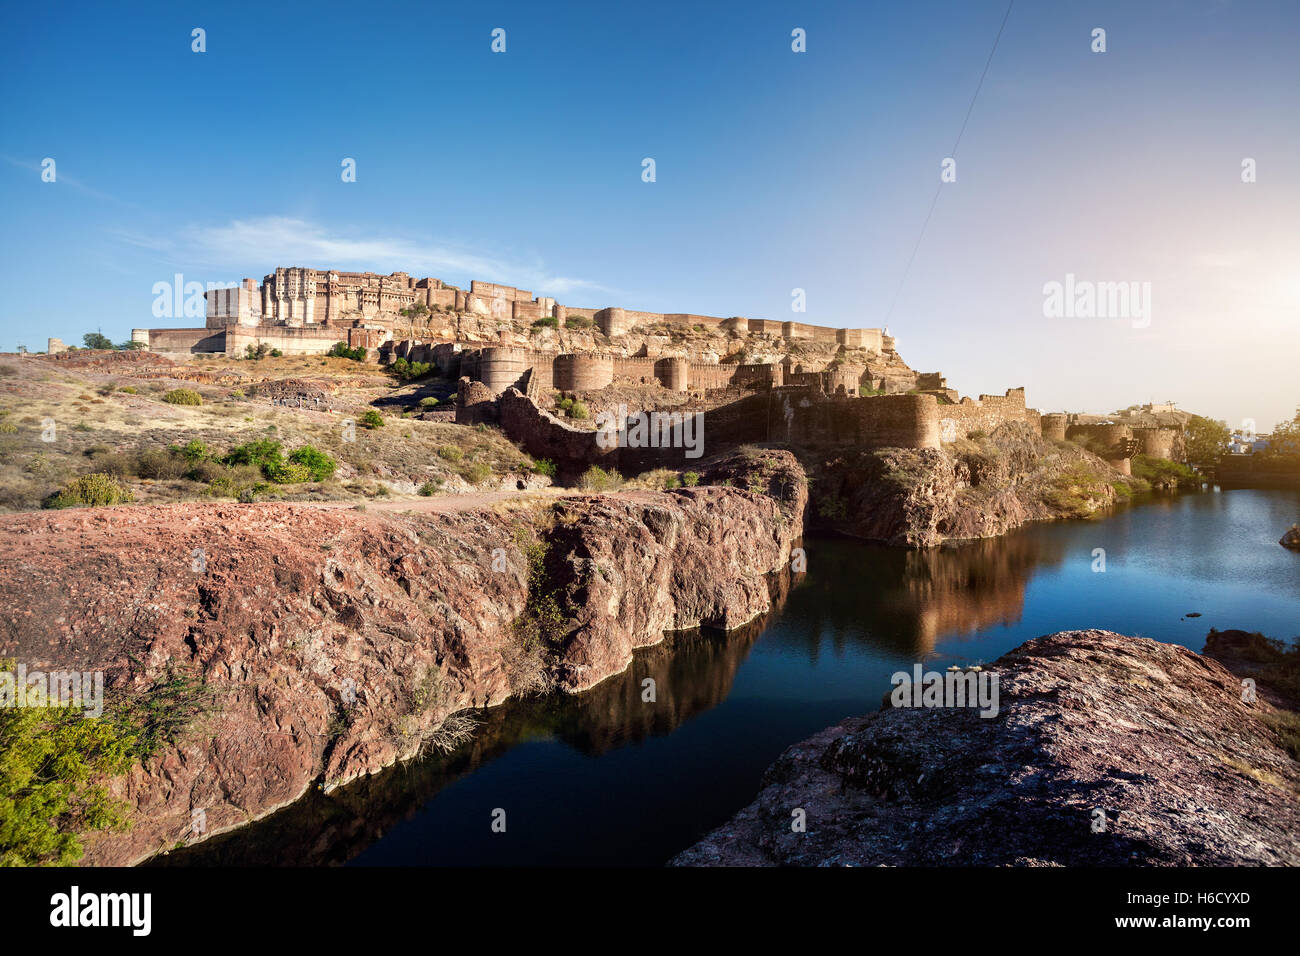 Mehrangarh fortress in the dessert and pound Jodhpur blue city, Rajasthan, India - Stock Image